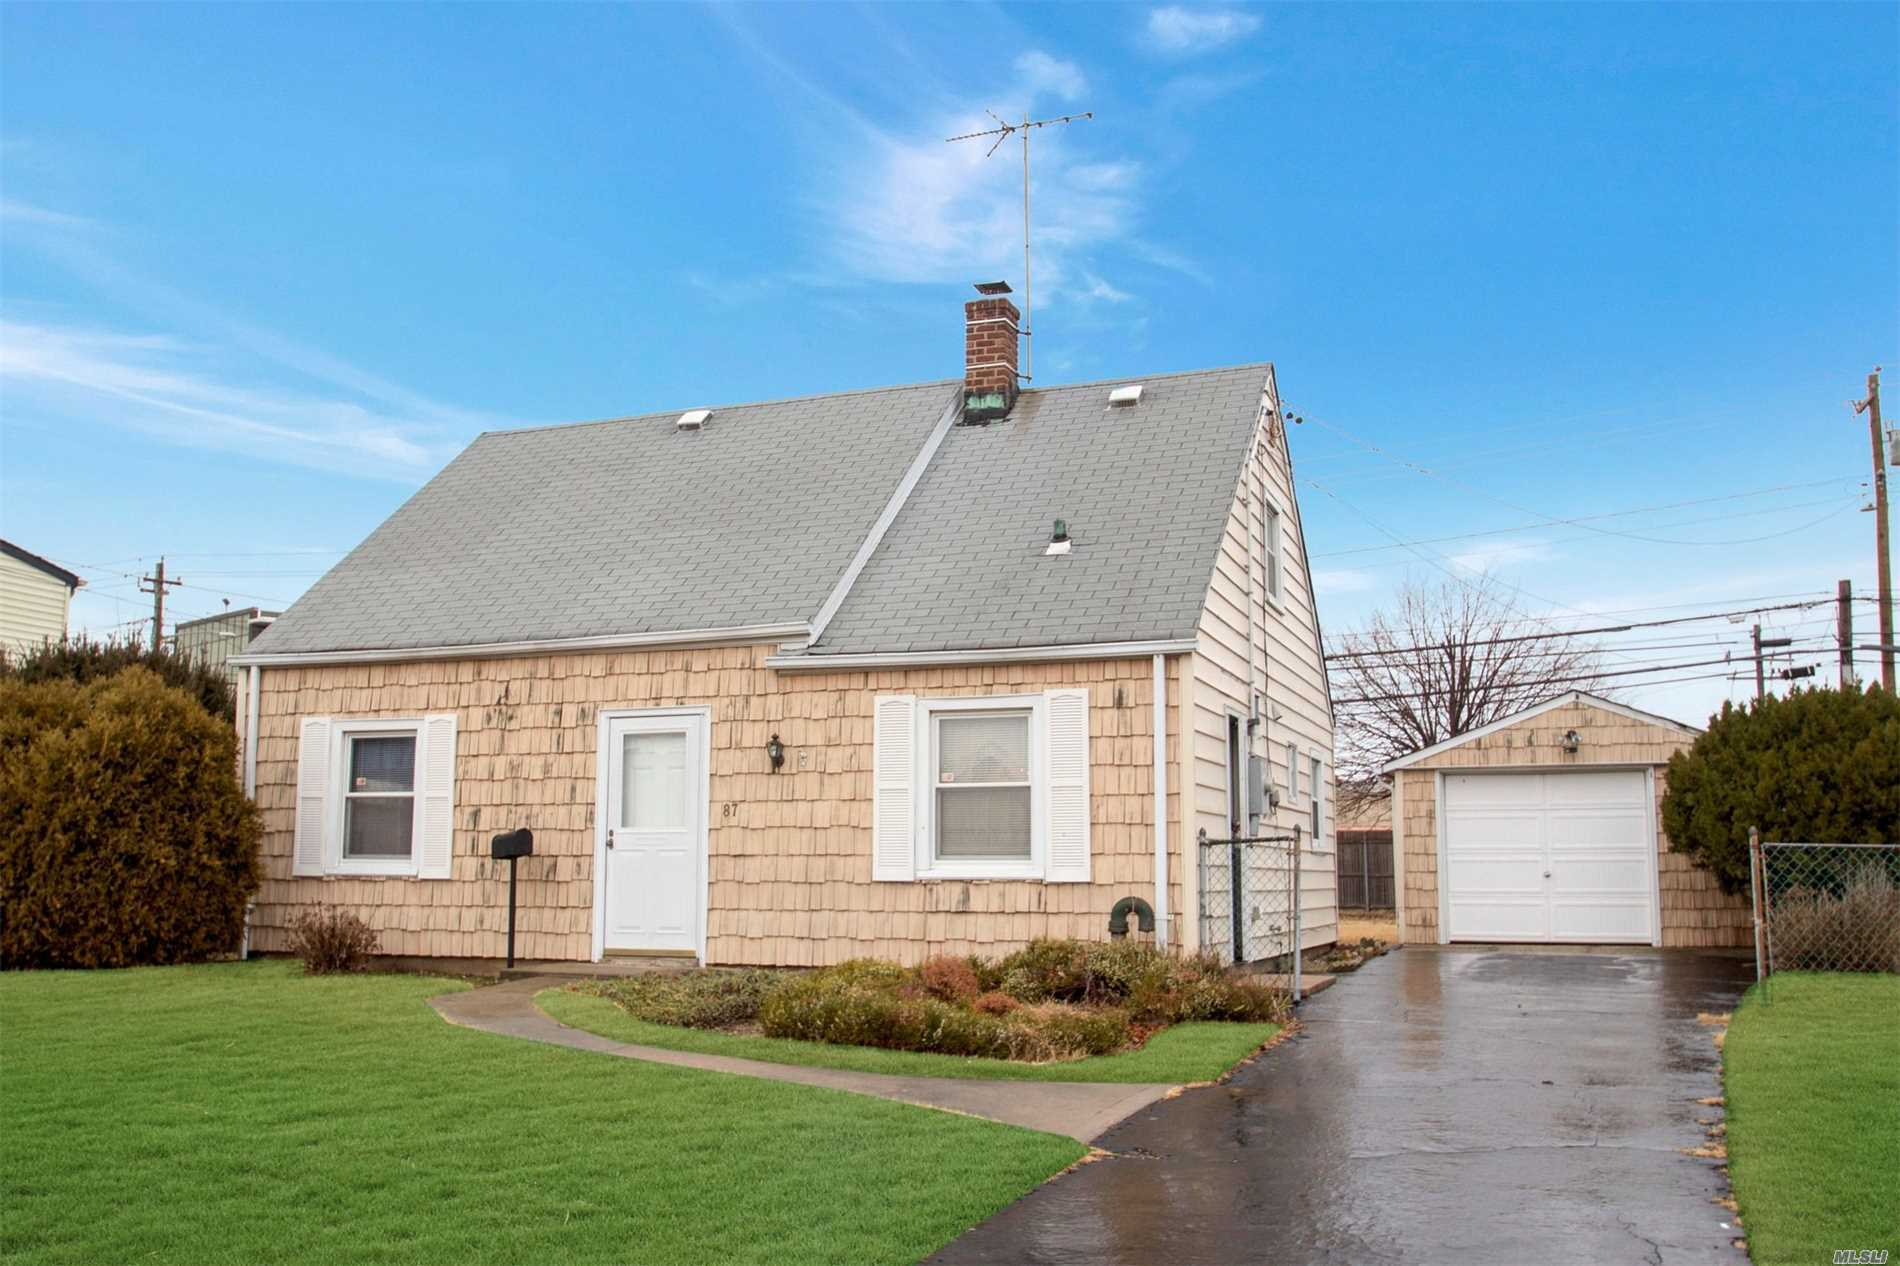 87 Balsam Ln - Levittown, New York